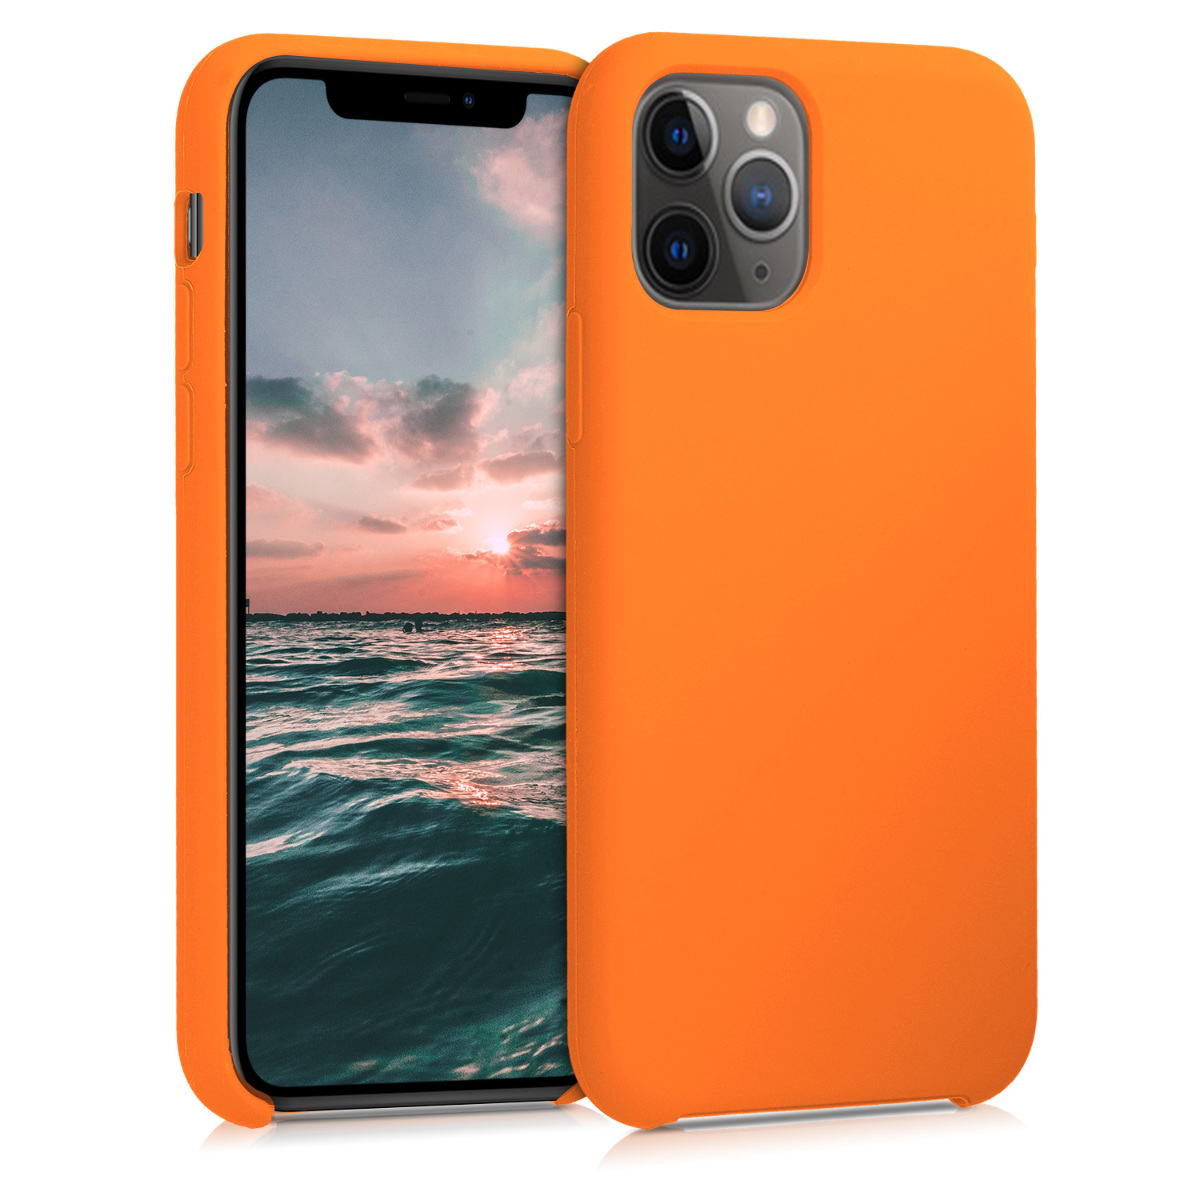 KW Θήκη Σιλικόνης Apple iPhone 11 Pro - Soft Flexible Rubber - Cosmic Orange (49726.150)